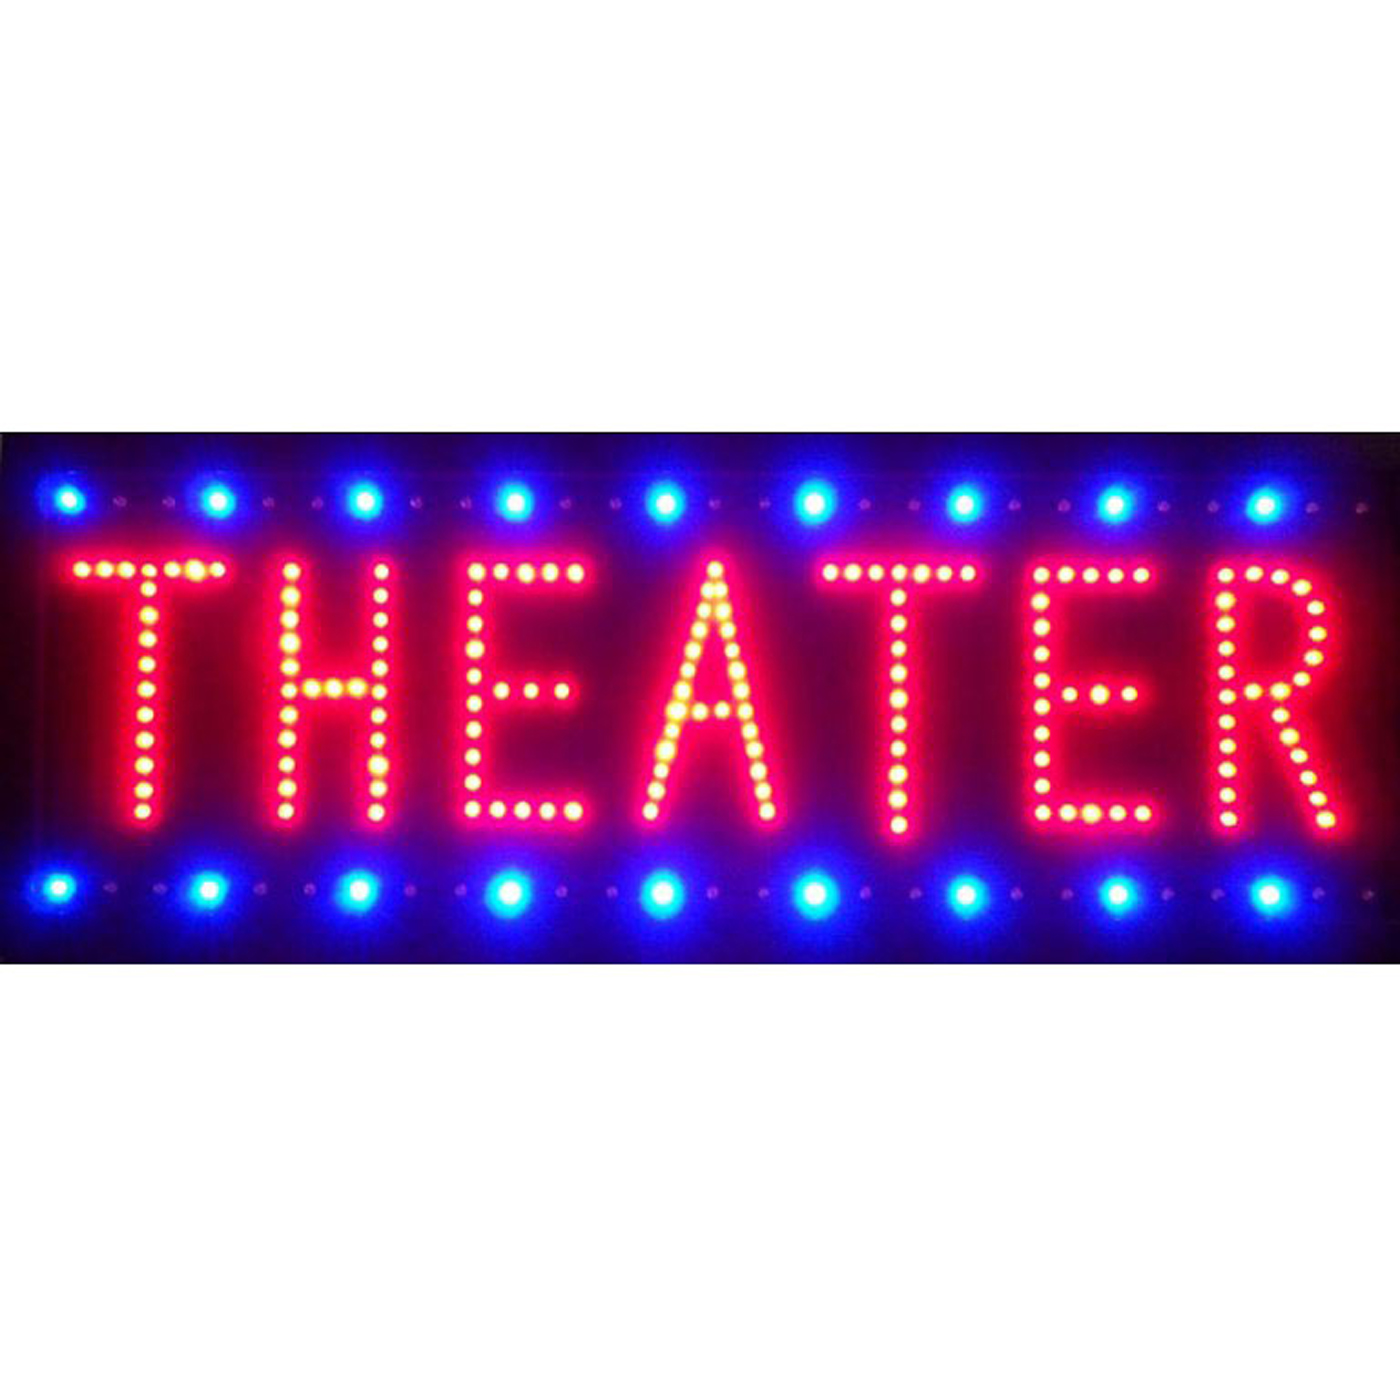 Light Up Theater: Theater LED Lighted Motion Sign